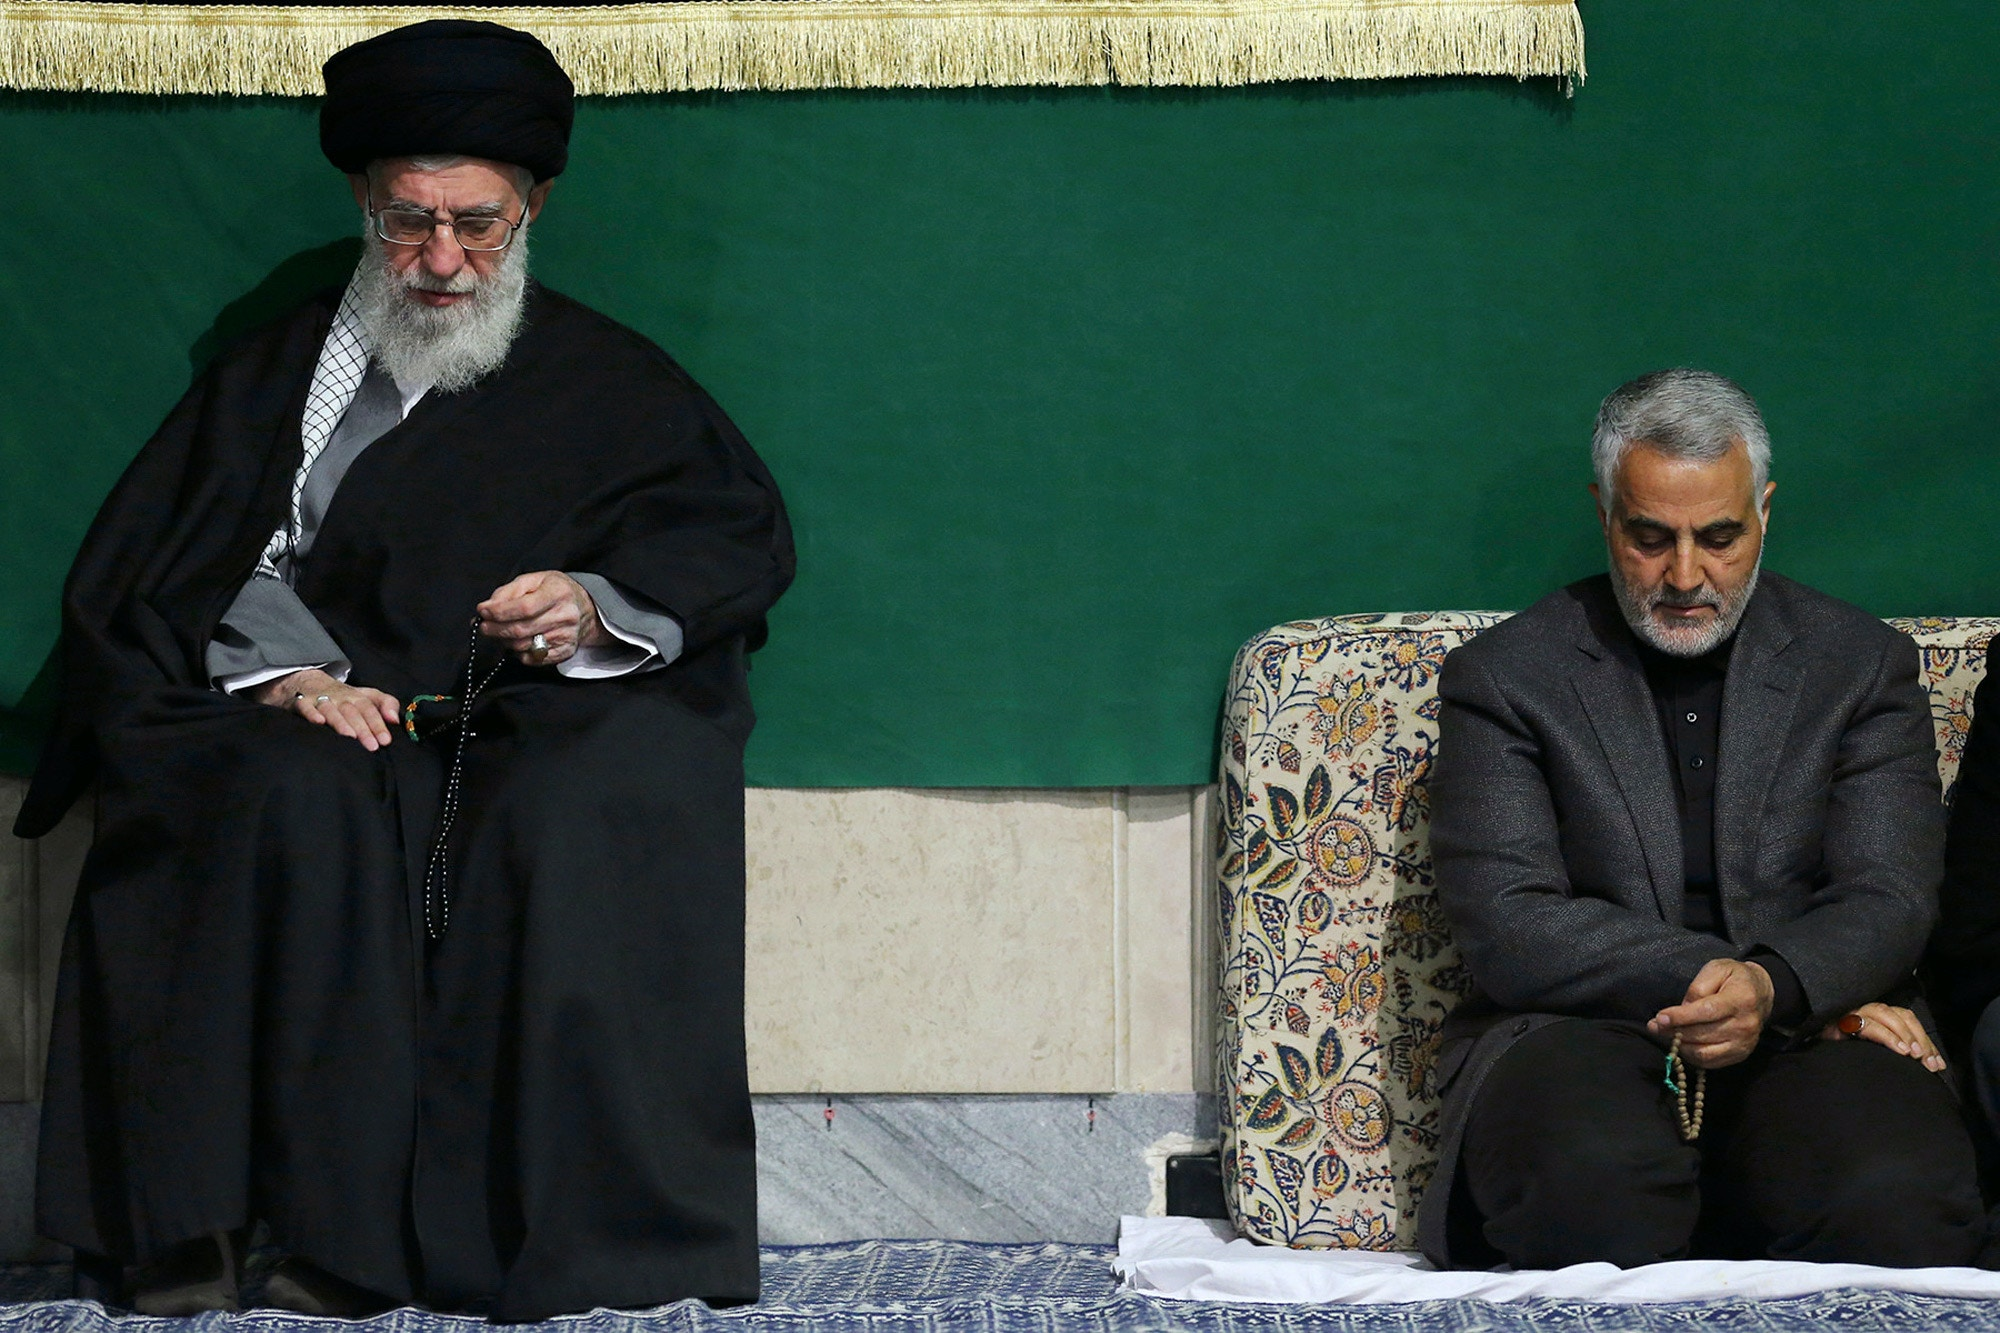 In this photo released by an official website of the office of the Iranian supreme leader, commander of Iran's Quds Force, Qassem Soleimani, right, sits next to the Supreme Leader Ayatollah Ali Khamenei while attending a religious ceremony in a mosque at his residence in Tehran, Iran, Friday, March 27, 2015. Iran's Foreign Minister Mohammad Javad Zarif sought Friday to reassure the six world powers conducting nuclear power talks in Switzerland, saying the negotiations remained focused on sealing a deal. (AP Photo/Office of the Iranian Supreme Leader)